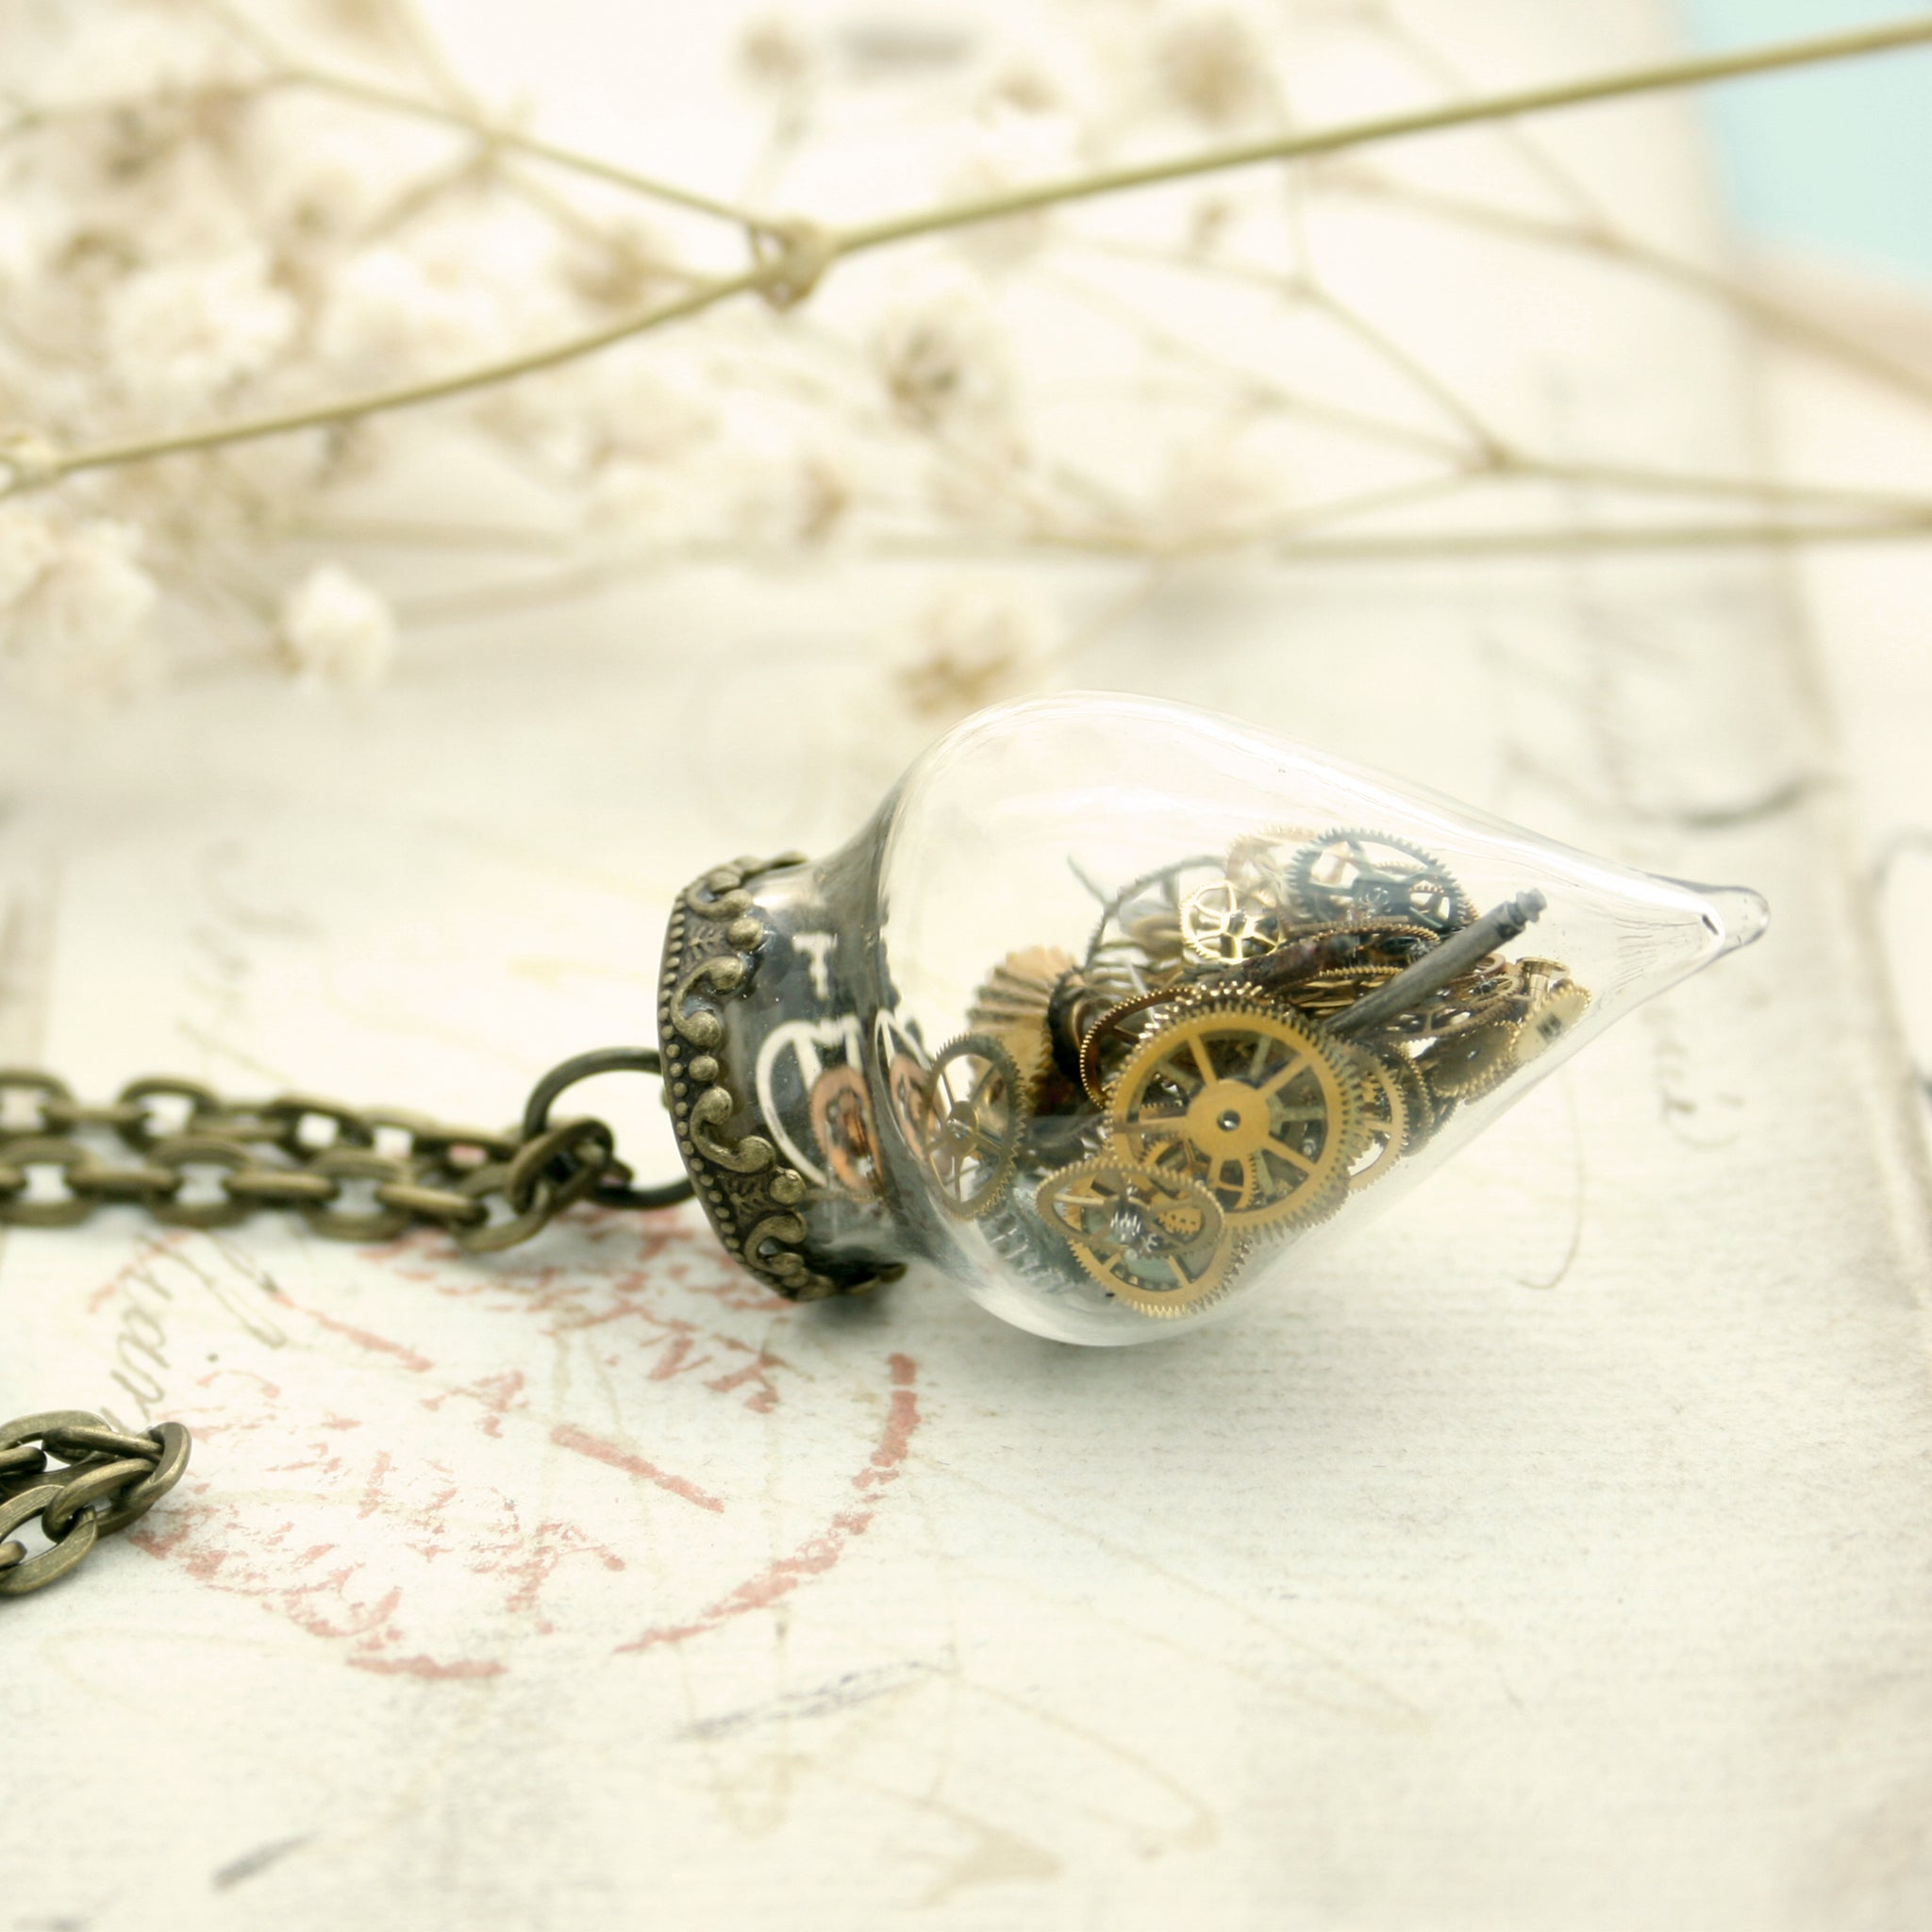 steampunk time capsule, terrarium pendant necklace made of glass in conical shape